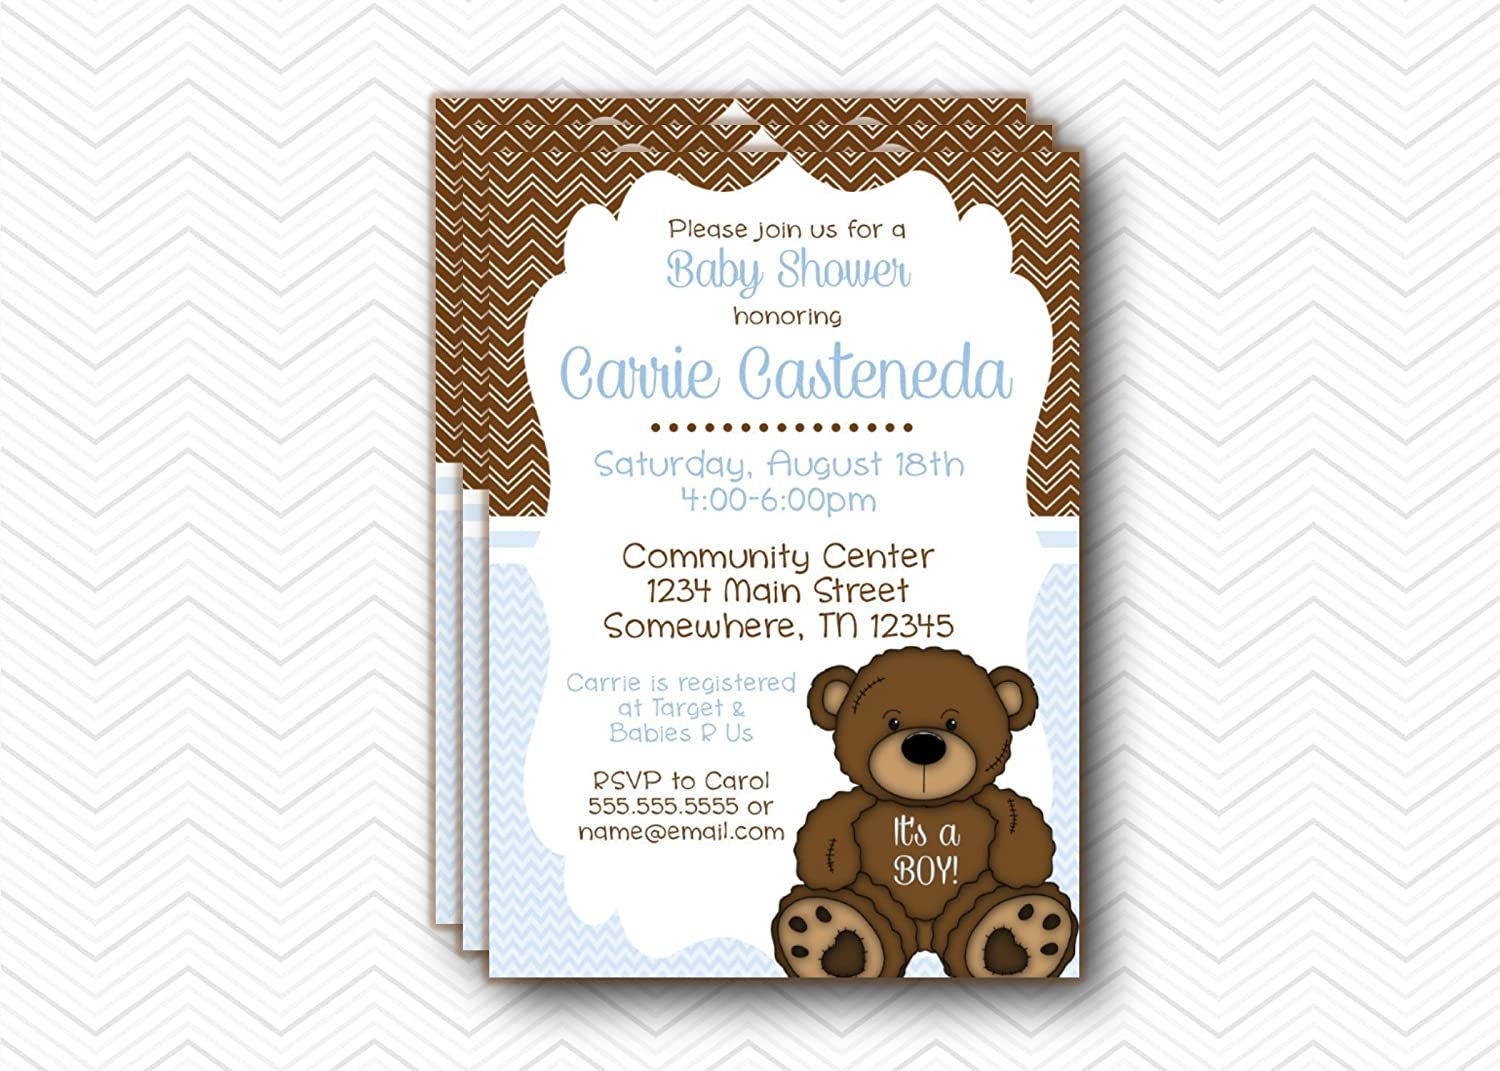 Amazon.com: It's a boy Blue & Brown Teddy Bear Baby Shower invitations. 5x7  with envelopes: Handmade